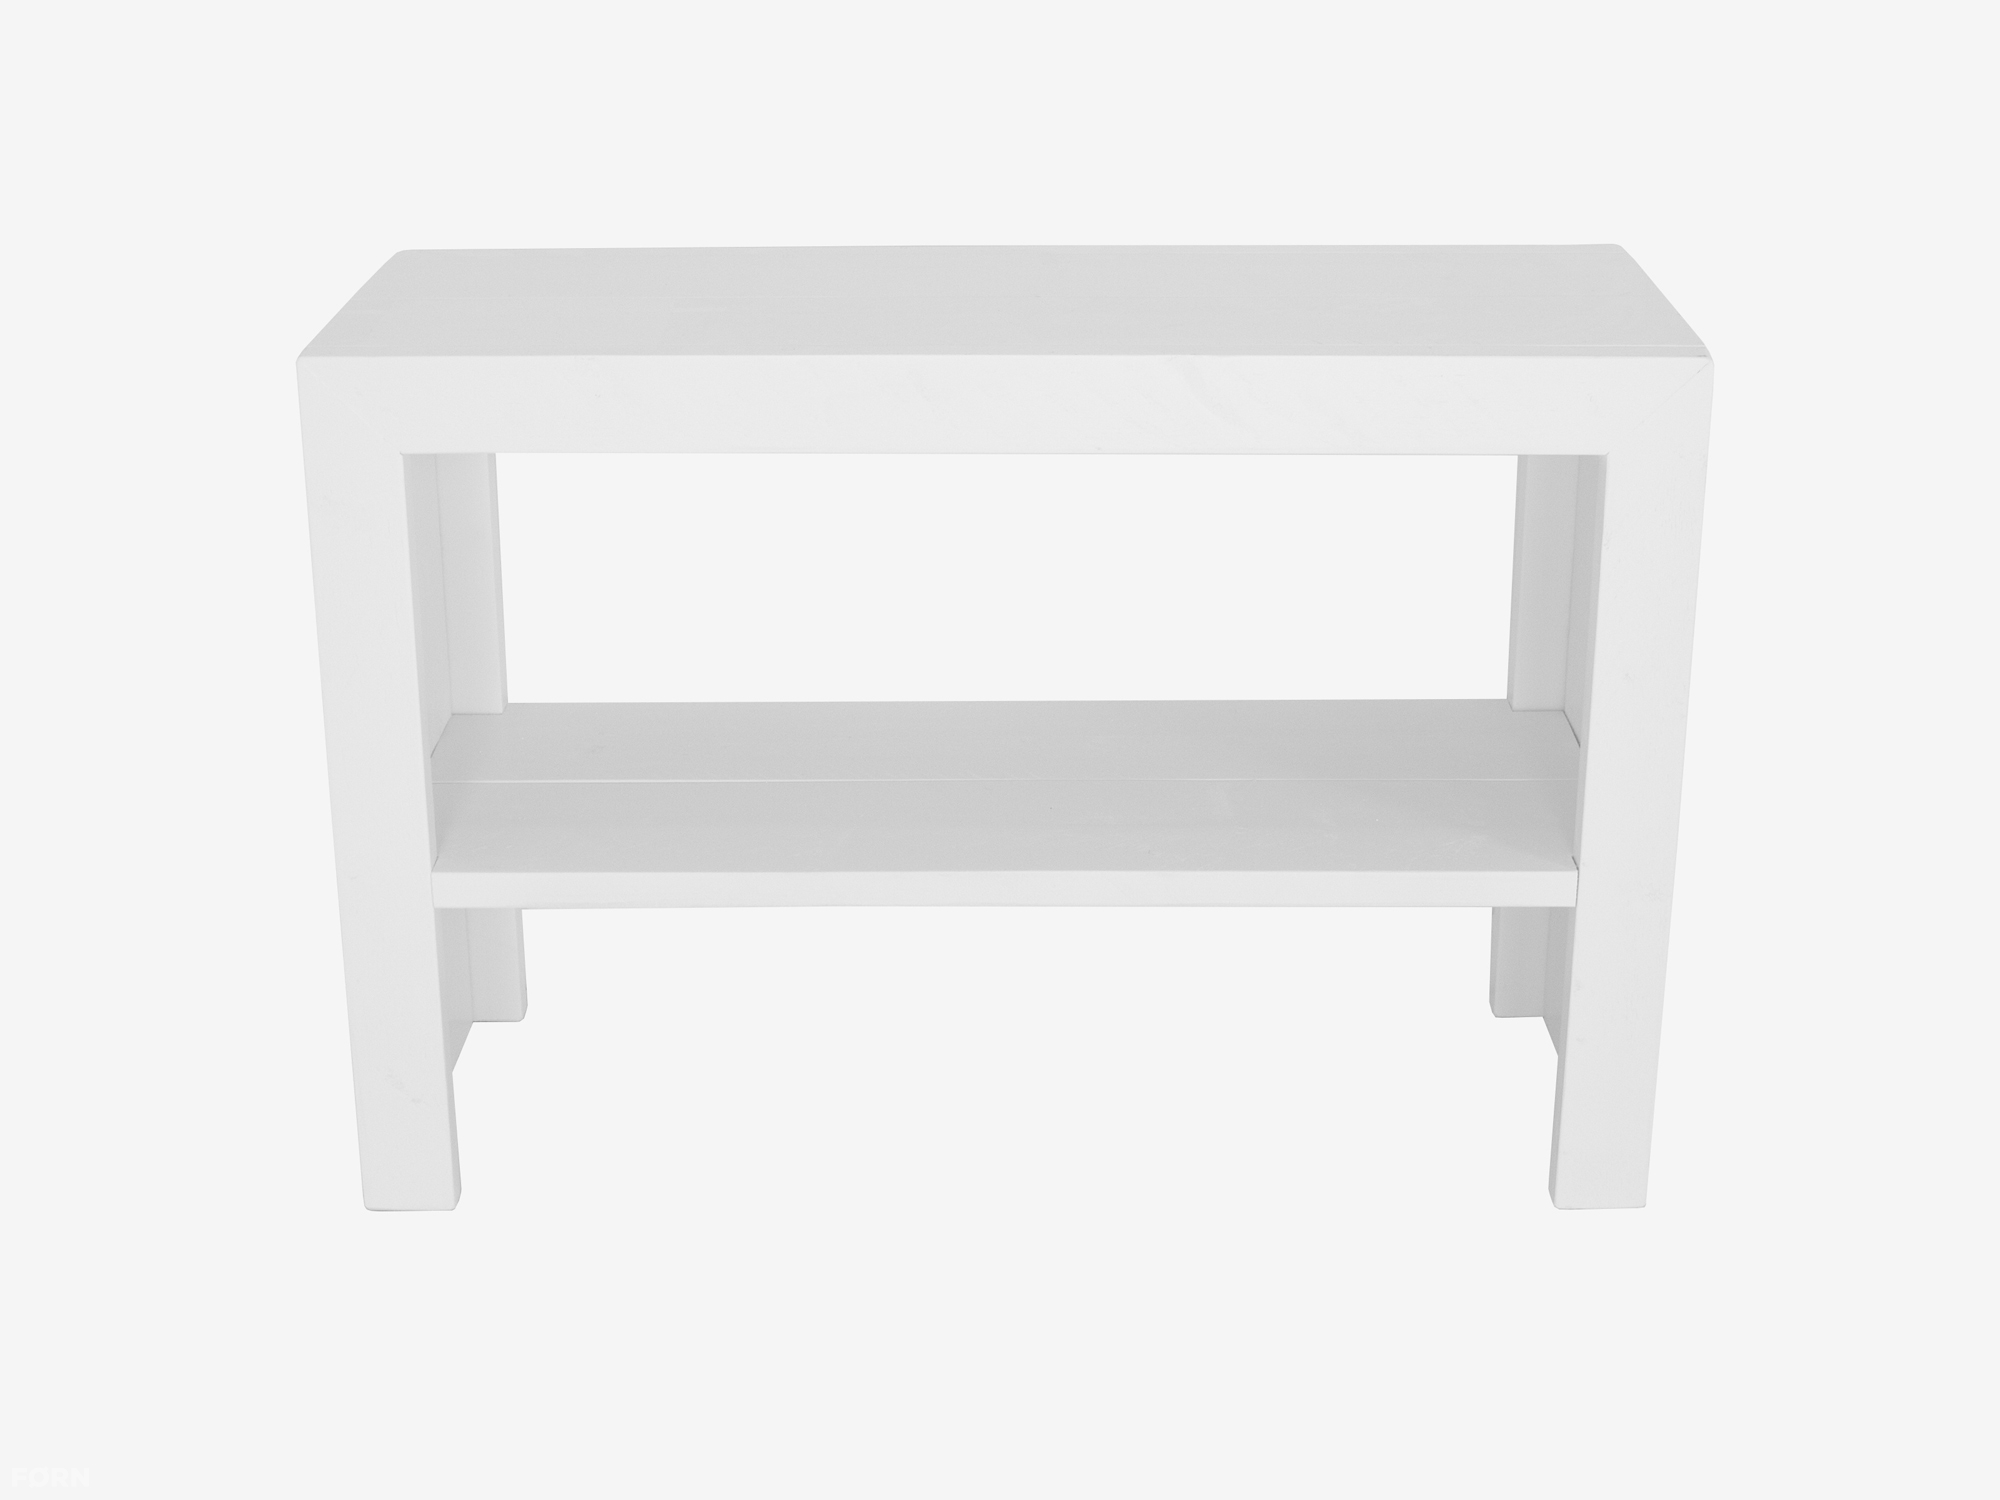 Goedkope Sidetable Wit.Steigerhouten Sidetable Haags